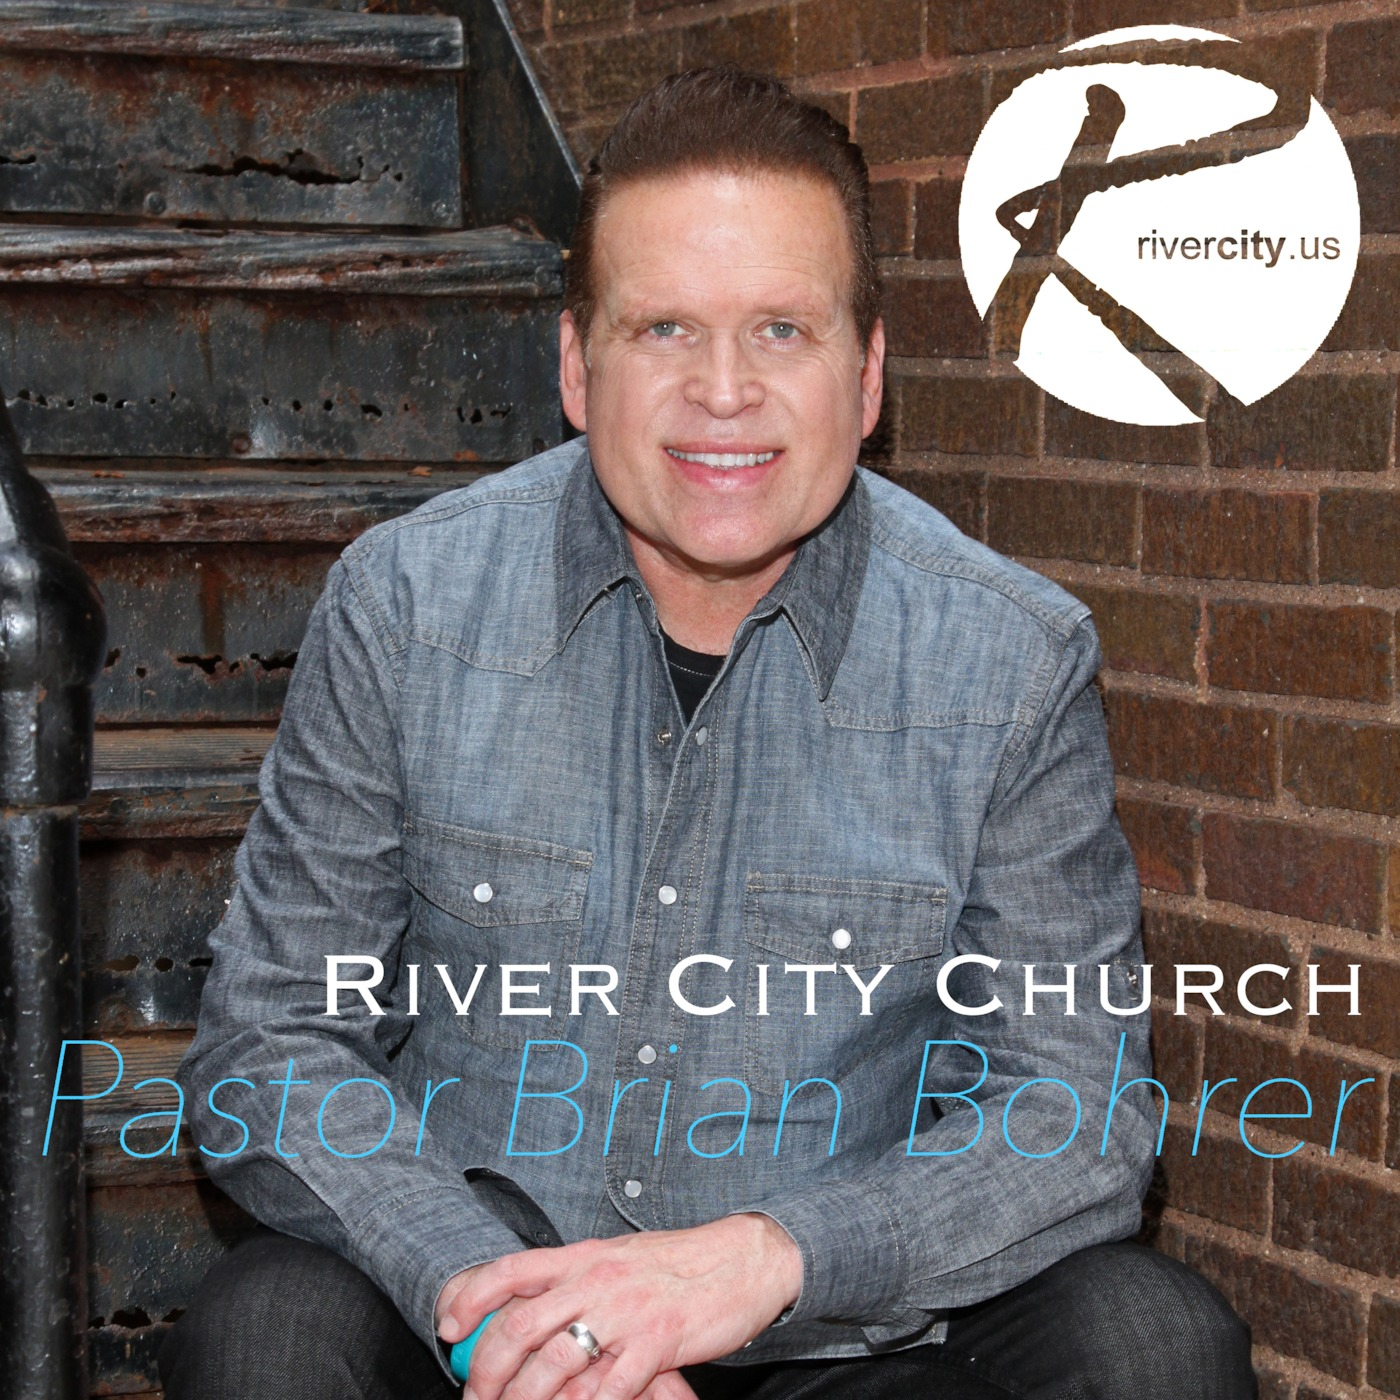 River City Church